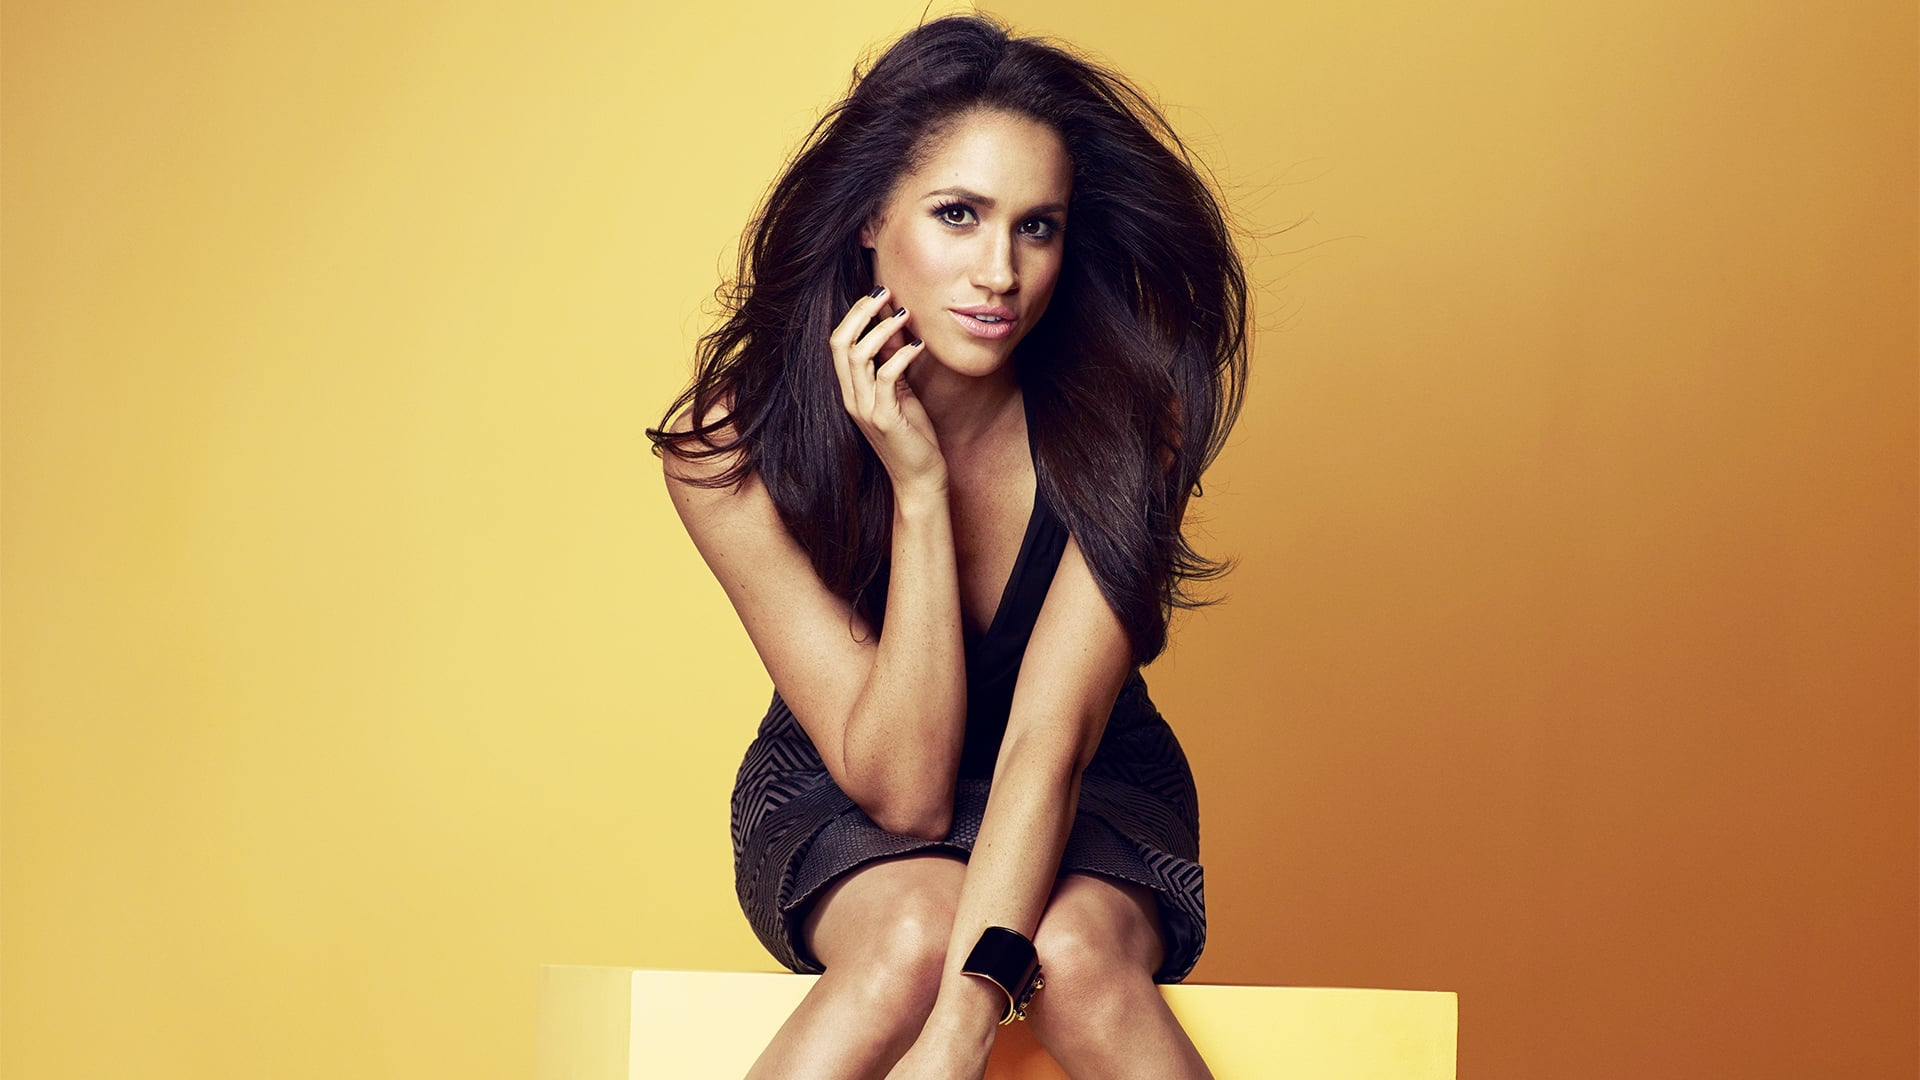 Meghan Markle HD Wallpapers Free Download